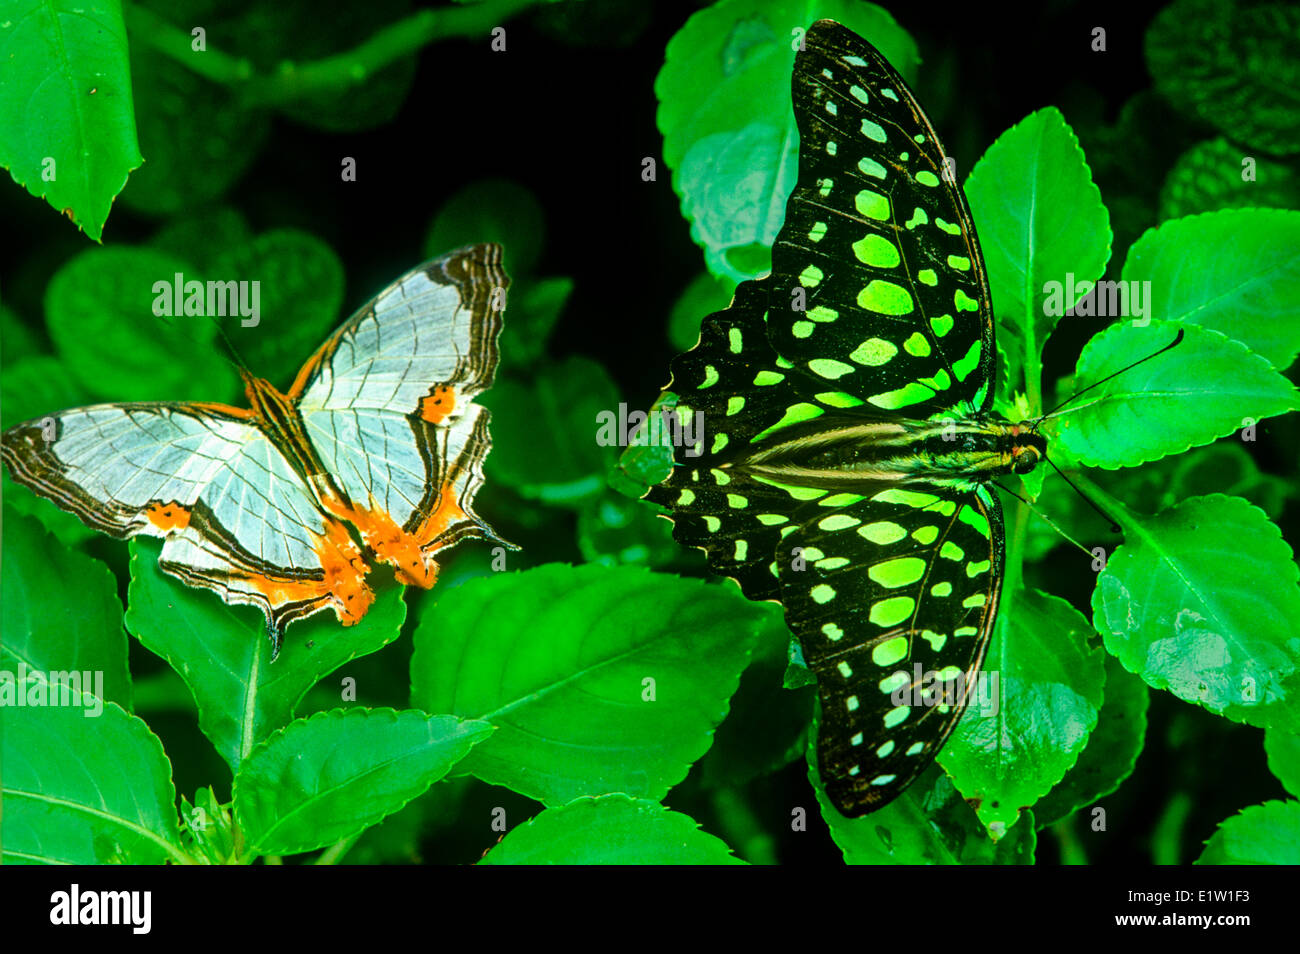 (Cyristis nivea nivalis), (Graphium agamemnon agamemnon), Tailed Jay butterfly, female, dorsal view,  Malaysia - Stock Image